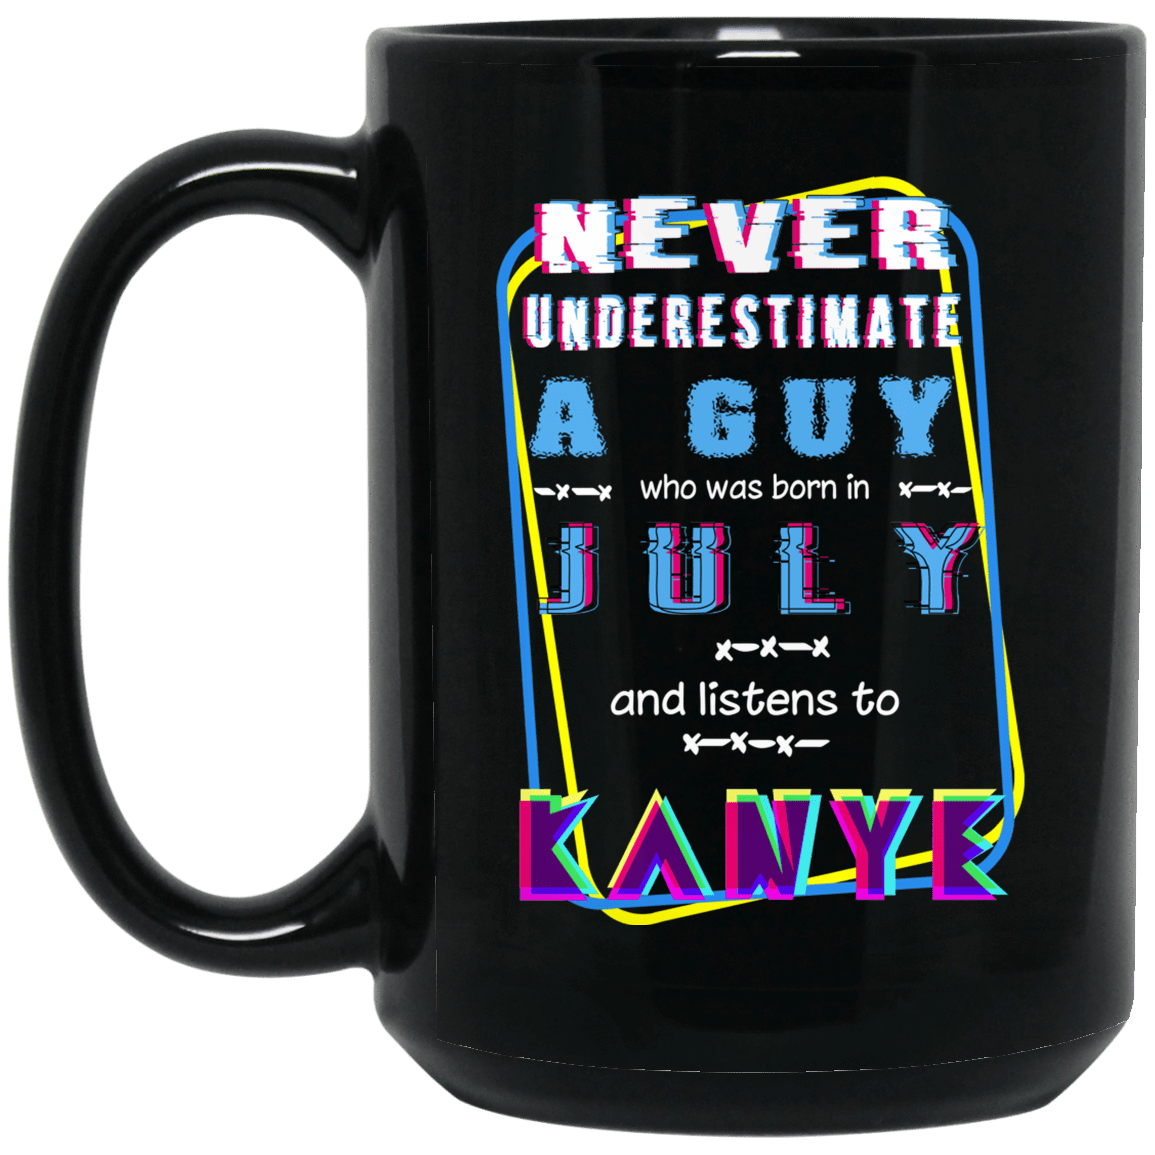 Never Underestimate A Guy Who Was Born In July And Listens To Kanye West Mug 1066-10182-76152202-49311 - Tee Ript